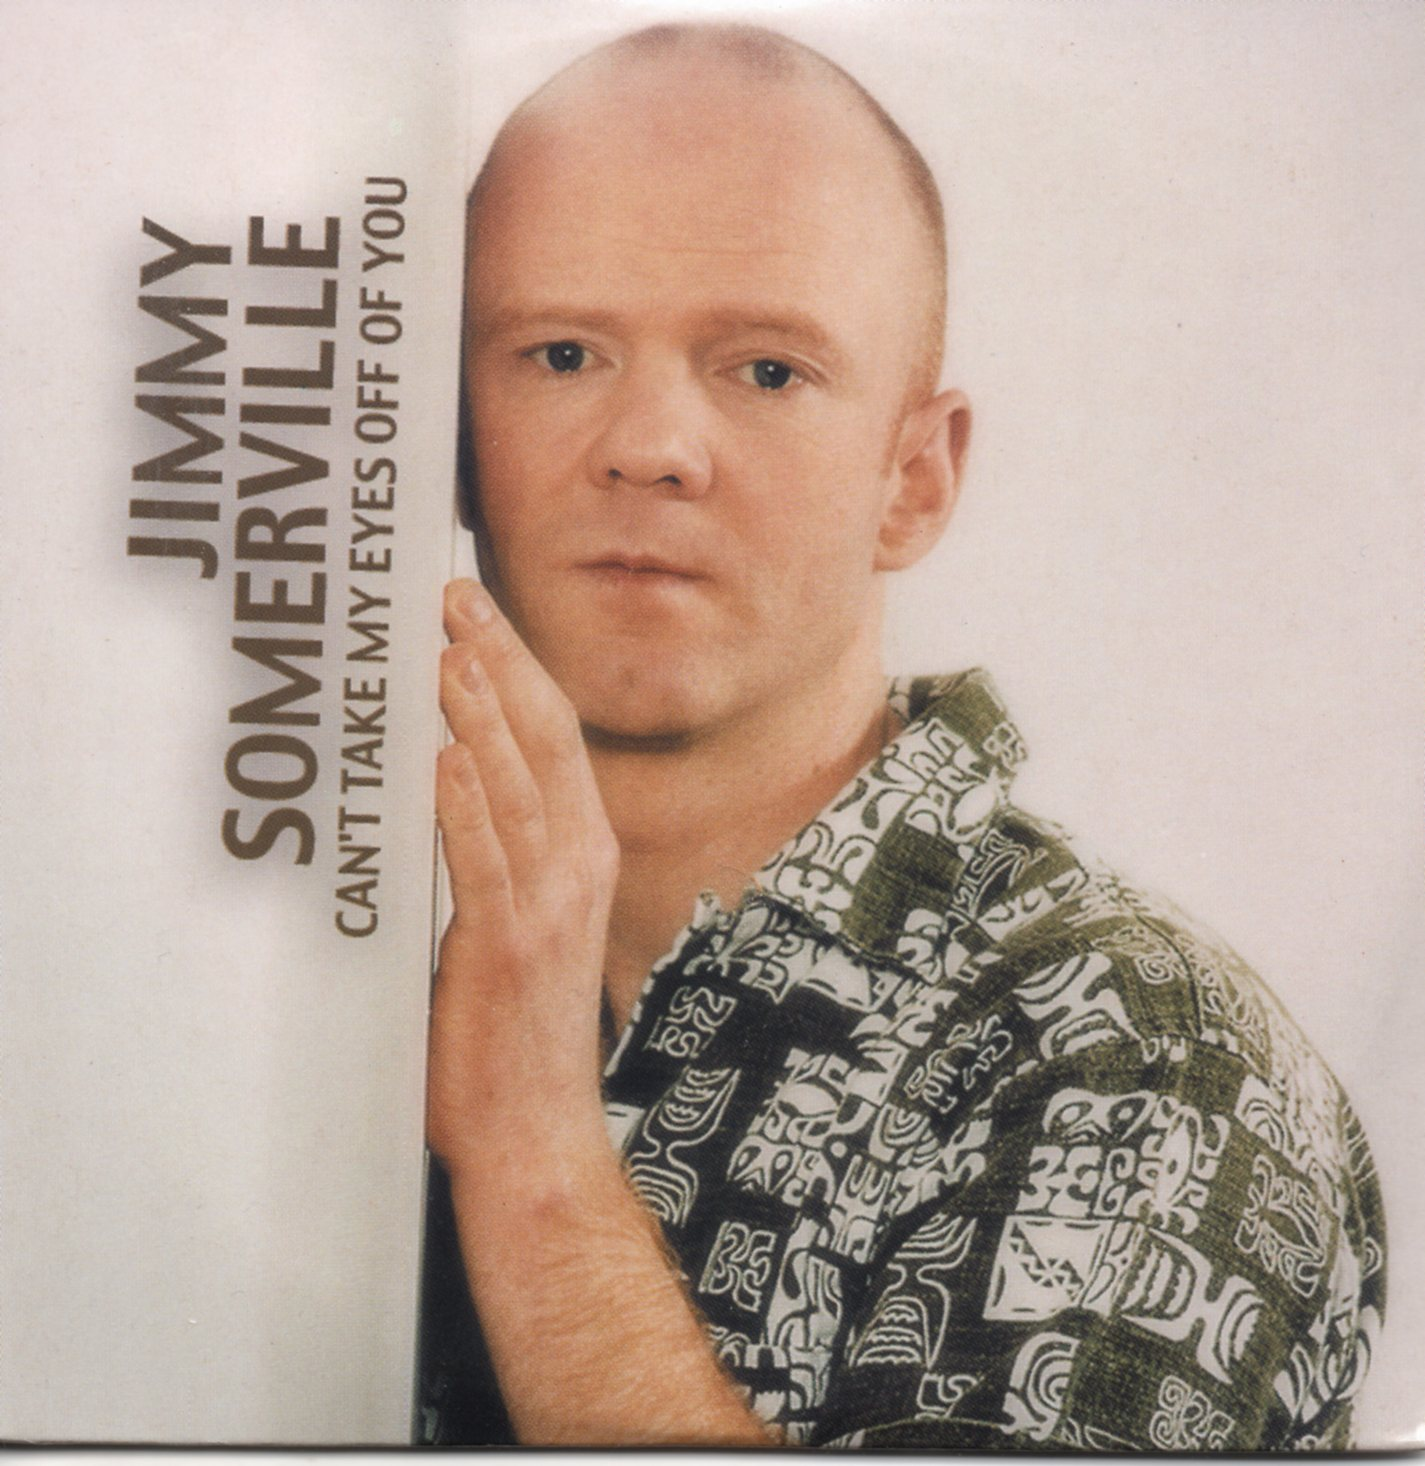 JIMMY SOMERVILLE - Can't Take My Eyes Off Of You 2-track CARD SLEEVE - CD single